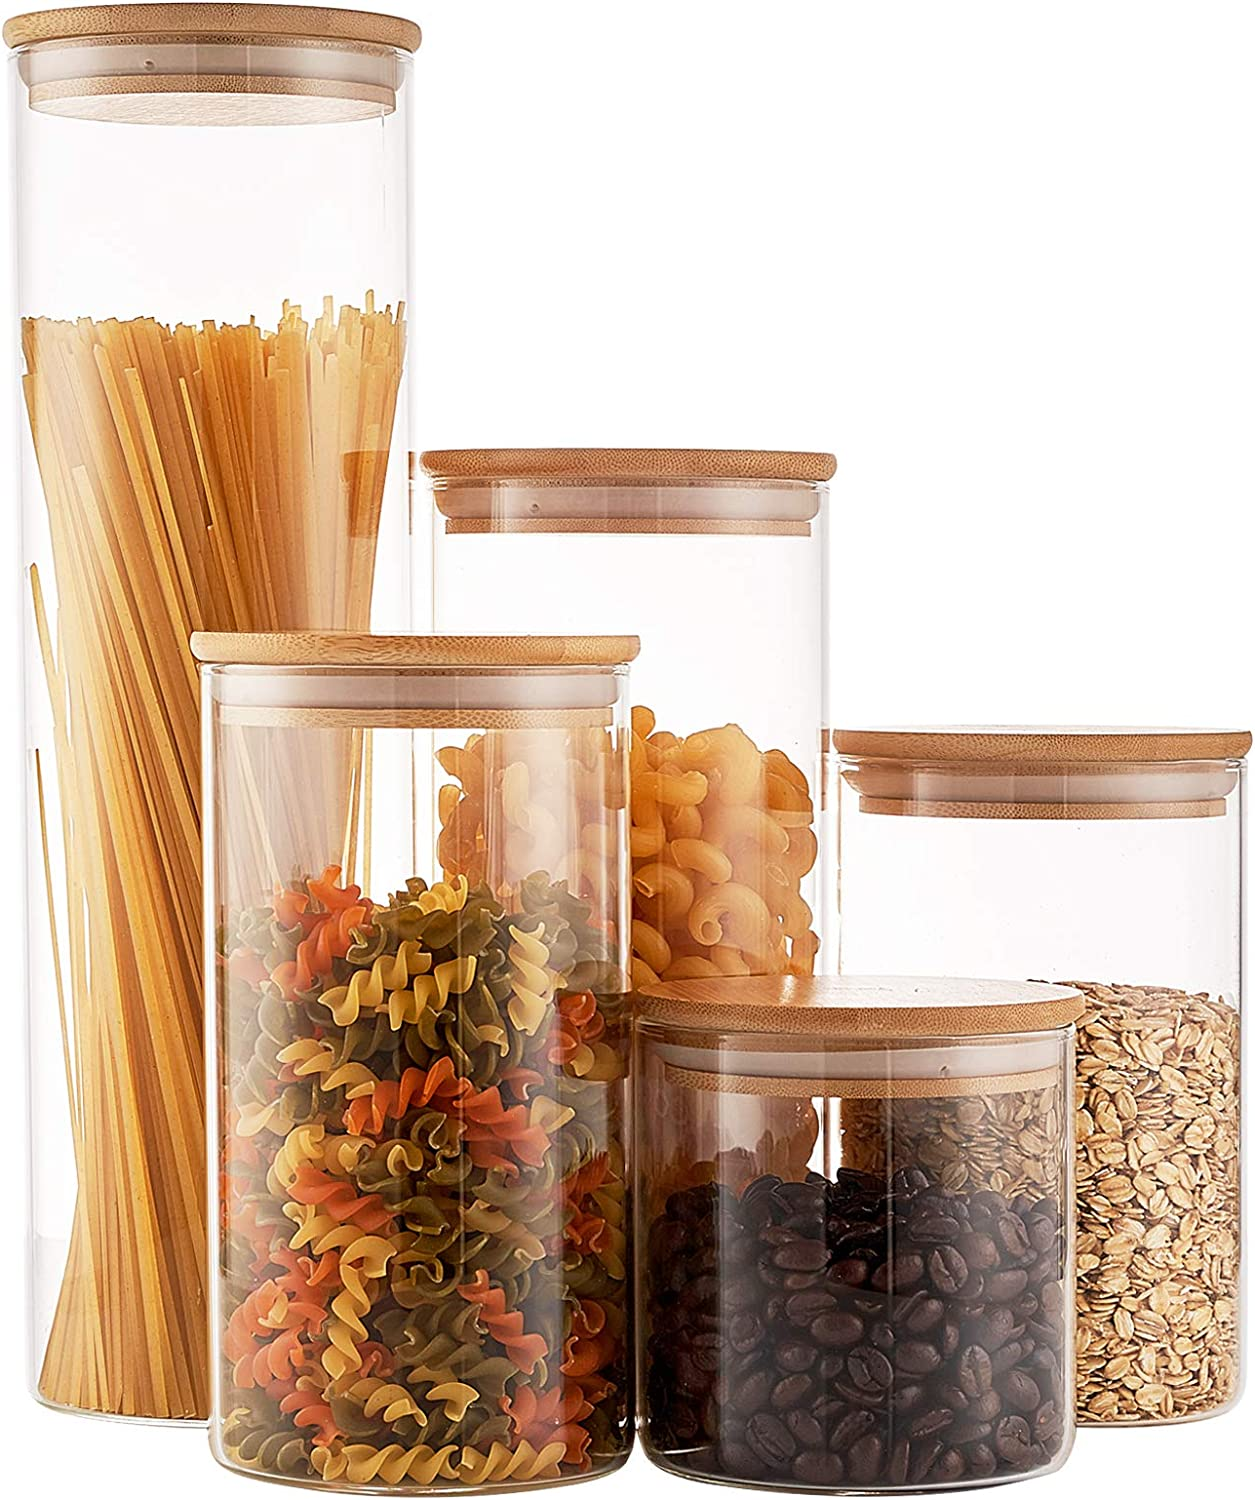 Glass Food Storage Jars Containers, Glass Storage Jar with Airtight Bamboo Lids Set of 5 Kitchen Glass Canisters For Coffee, Flour, Sugar, Candy, Cookie, Spice and More